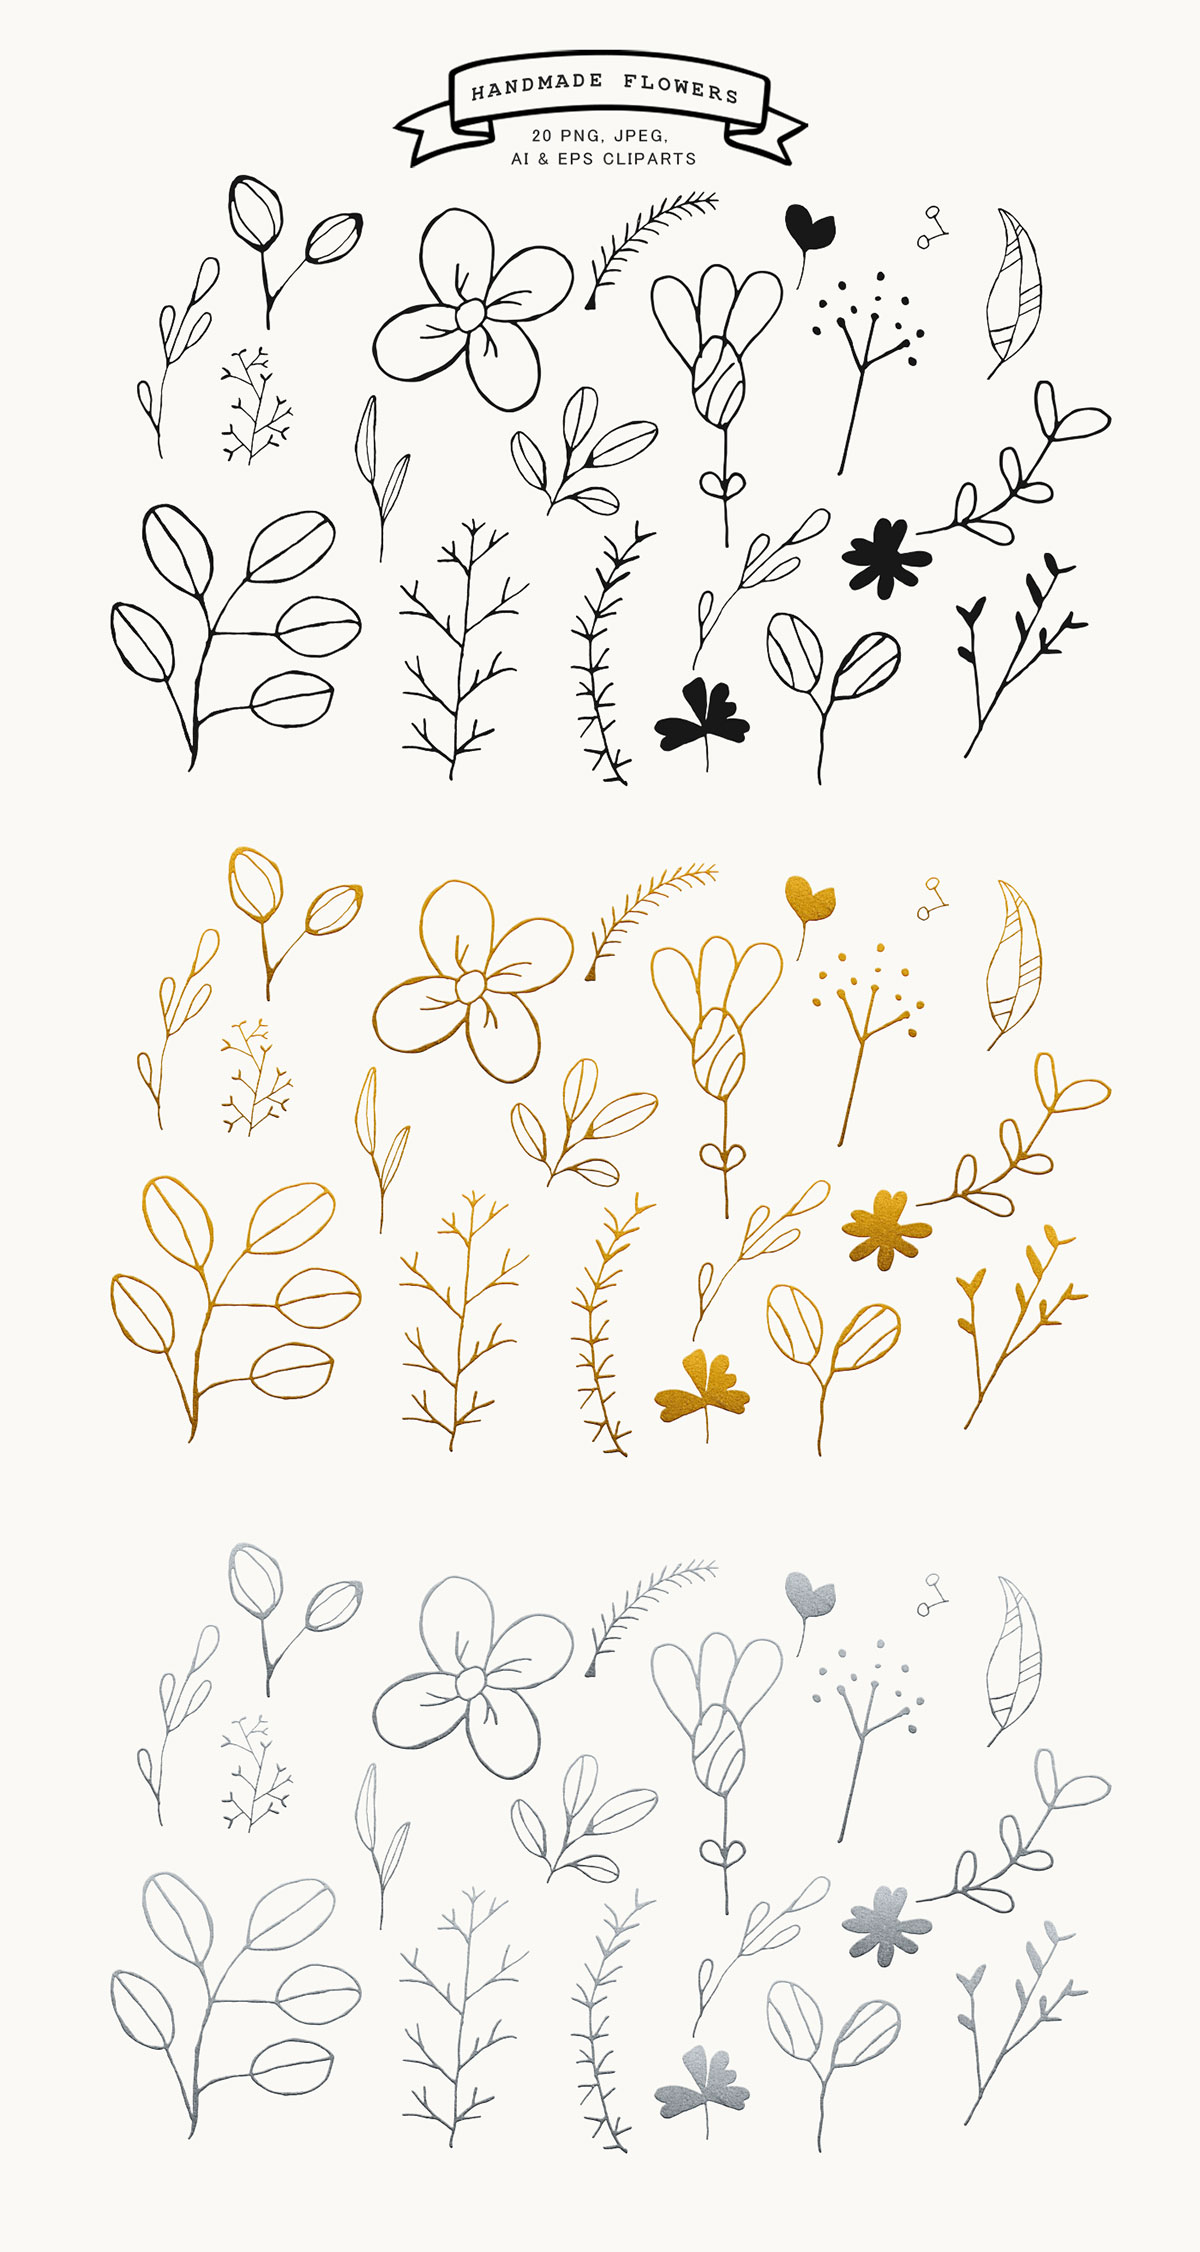 #Handmade #Flowers Free #Cliparts is a set of 20 beautifully handmade cliparts. This set was design in B&W, Silver and Golden Versions.